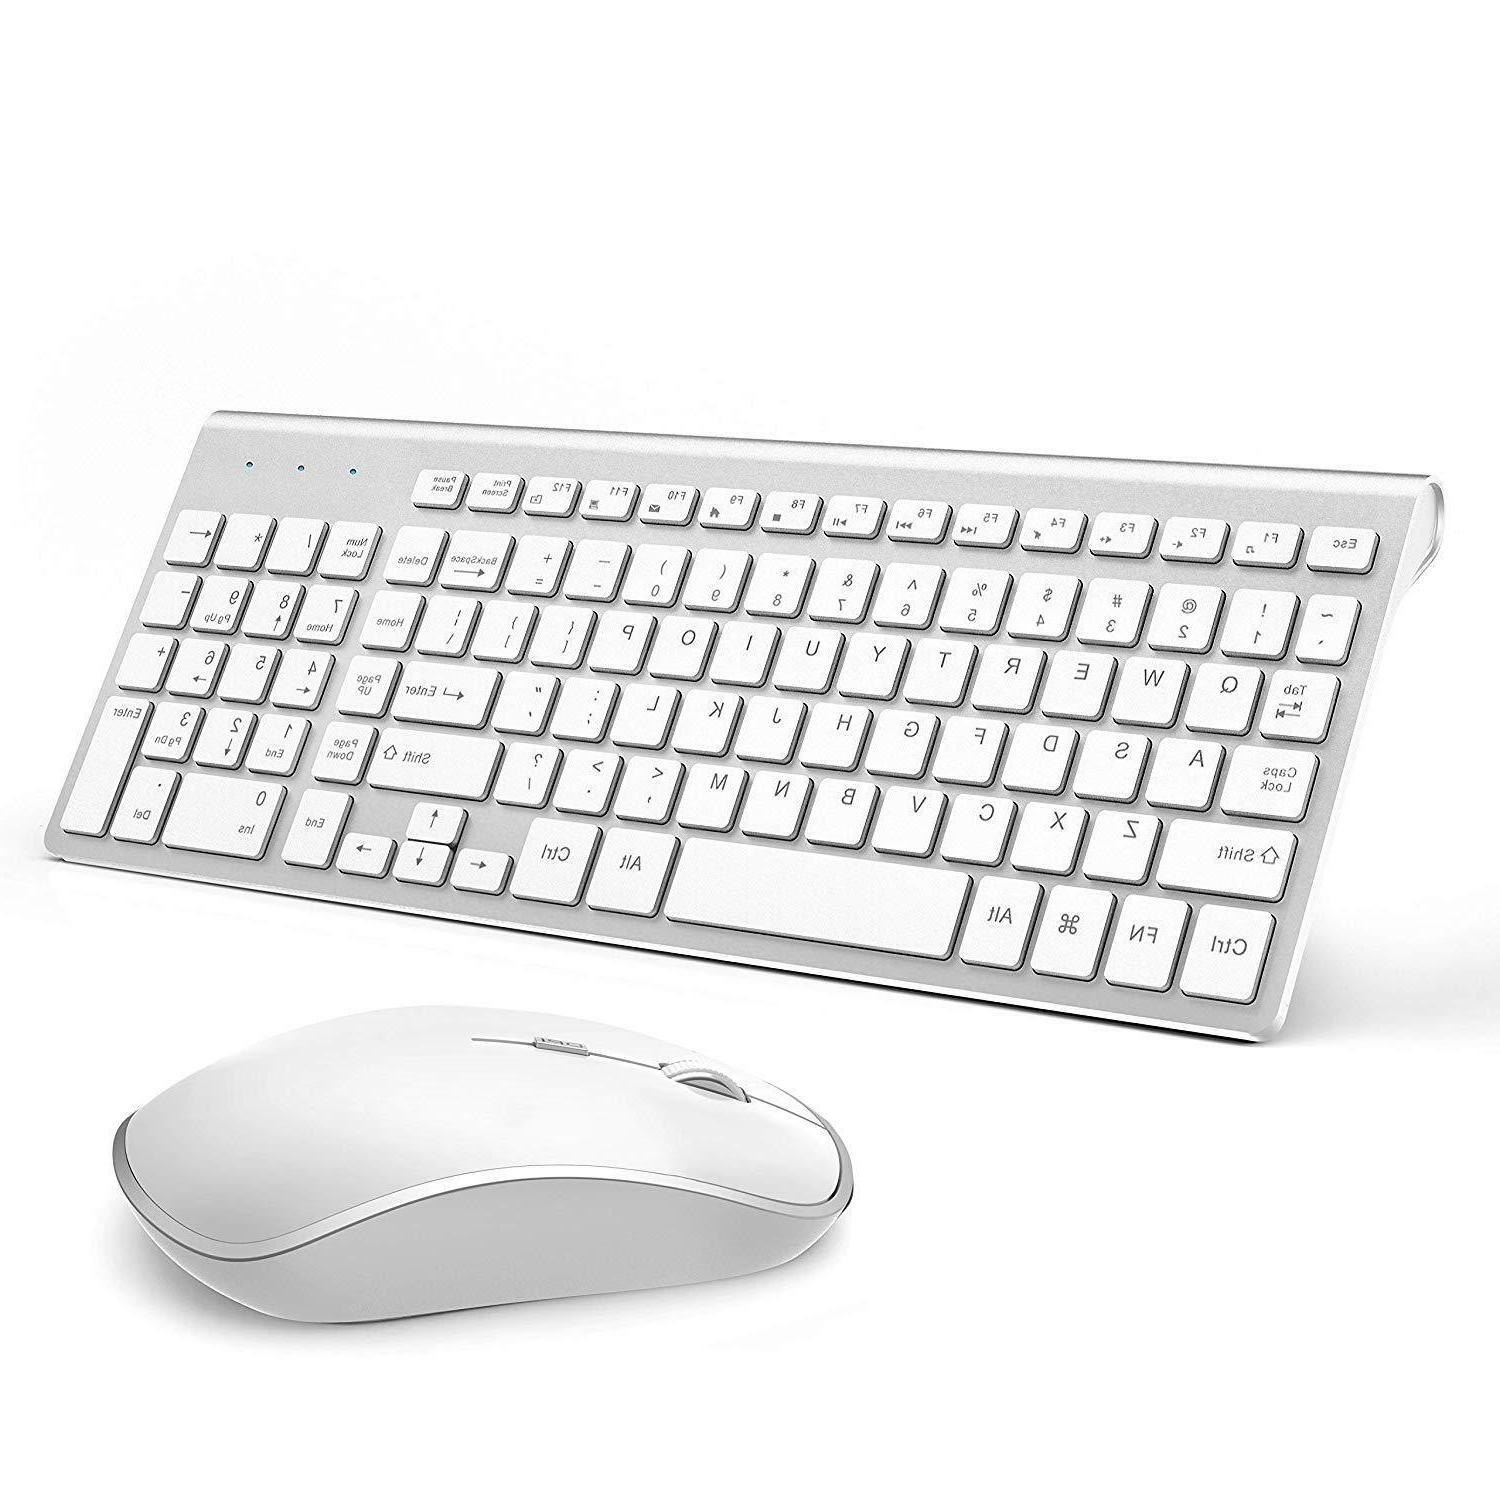 Mouse Computer Tablet